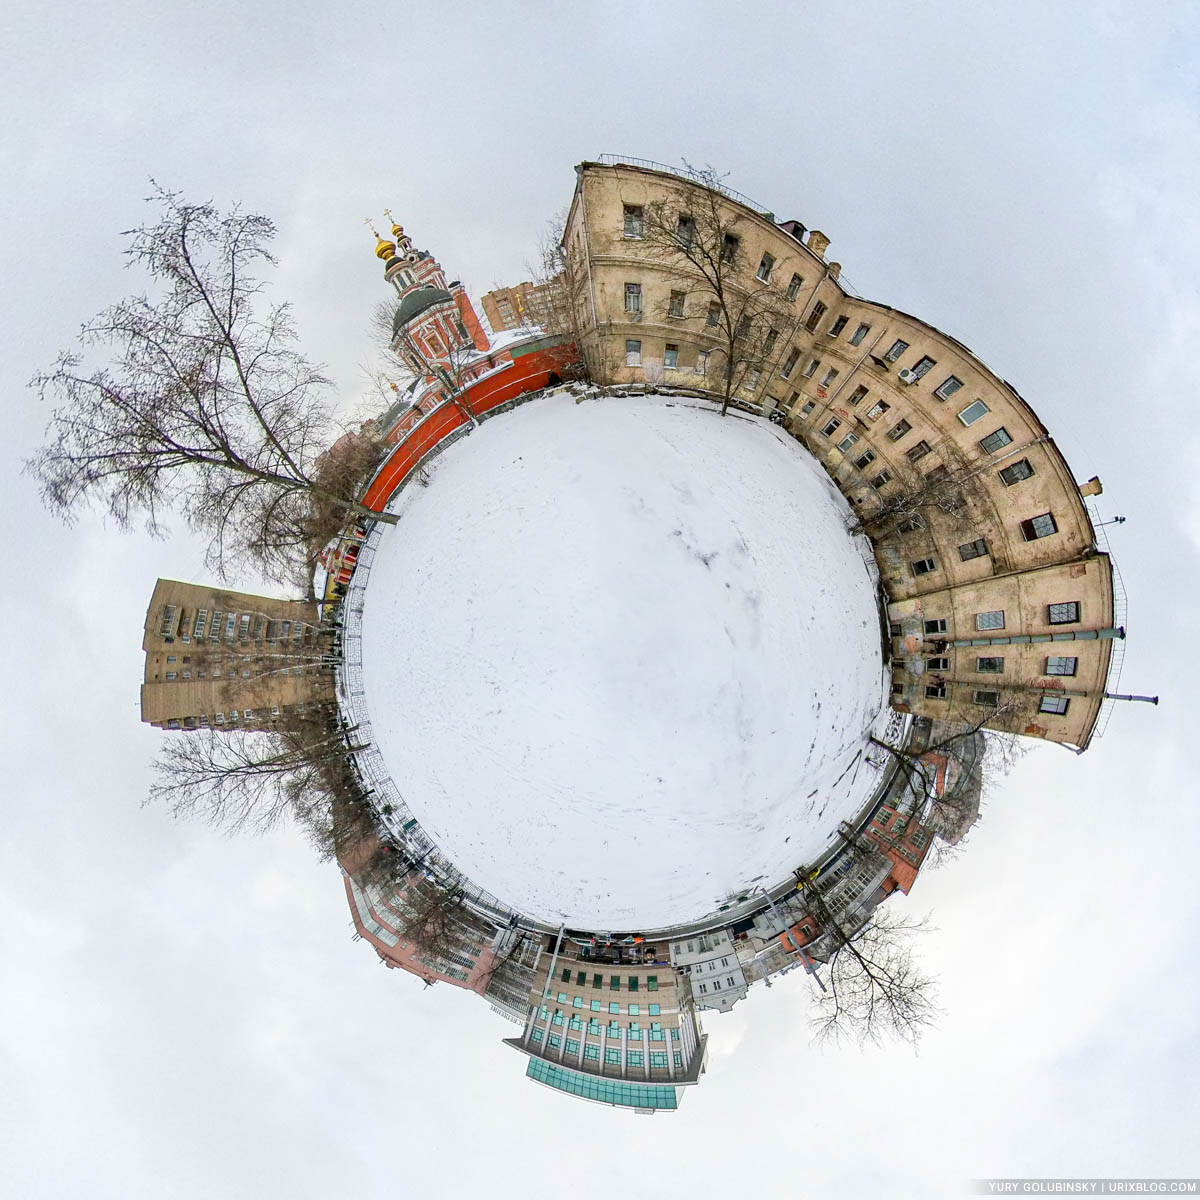 Pimen the Great church in New Vorotniki, panorama, little planet, tiny planet, wasteland, abandoned building, Moscow, Russia, 2020